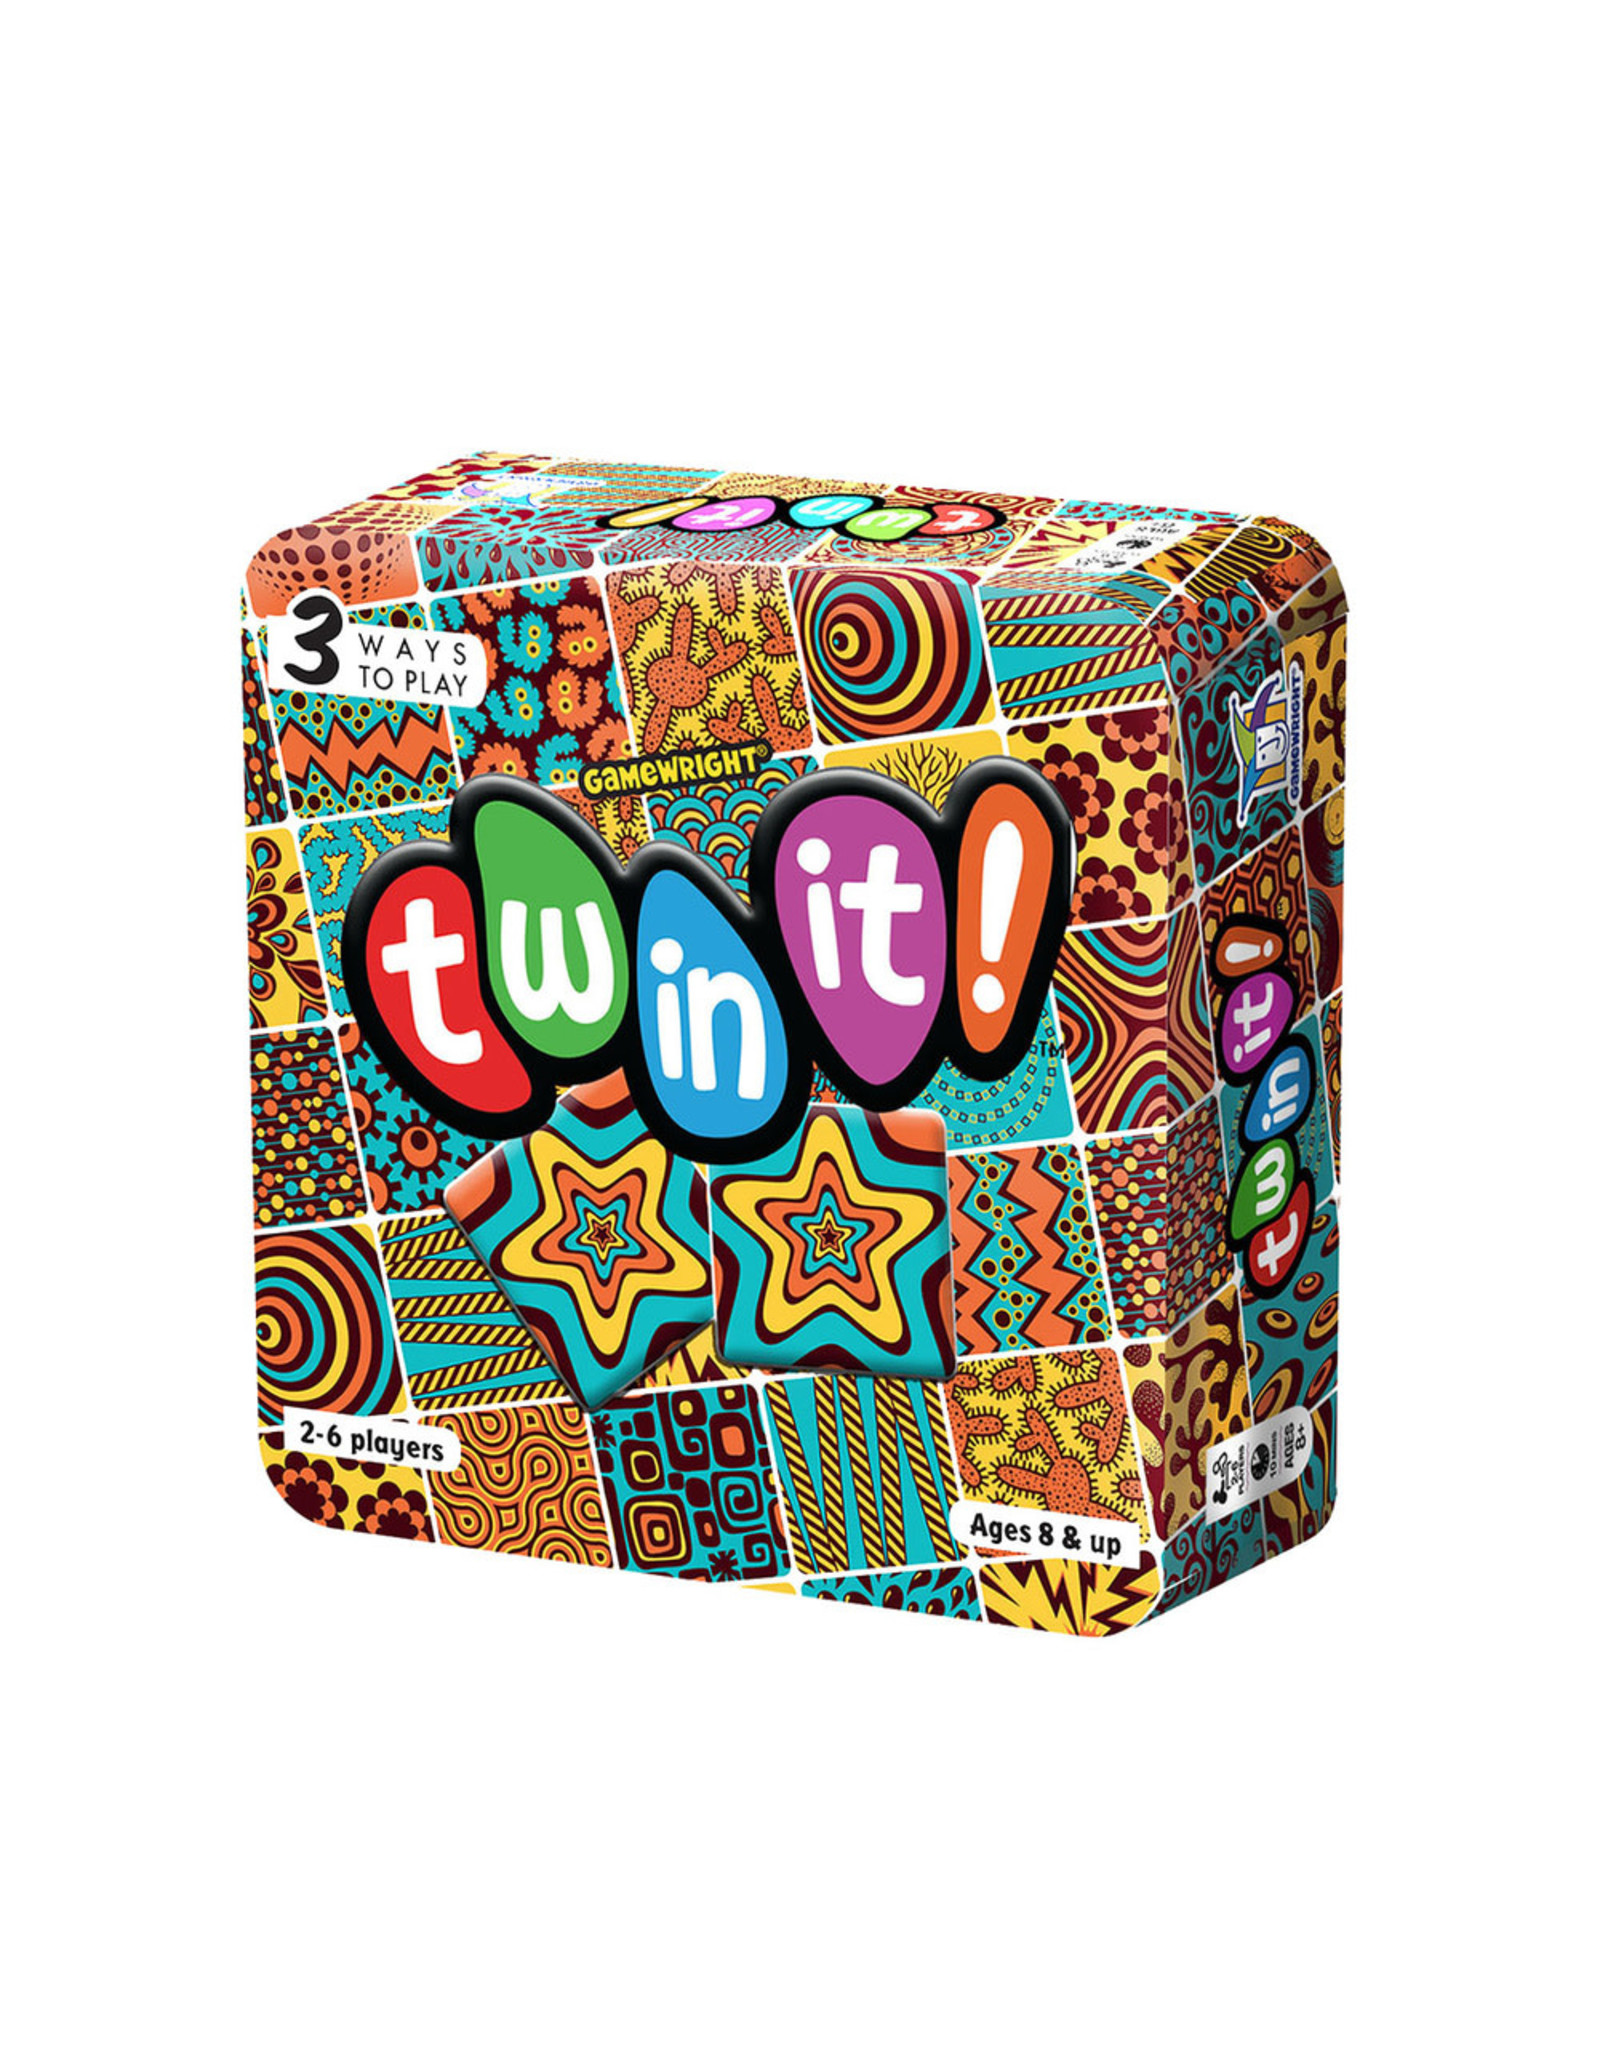 Gamewright SALE - Twin It!